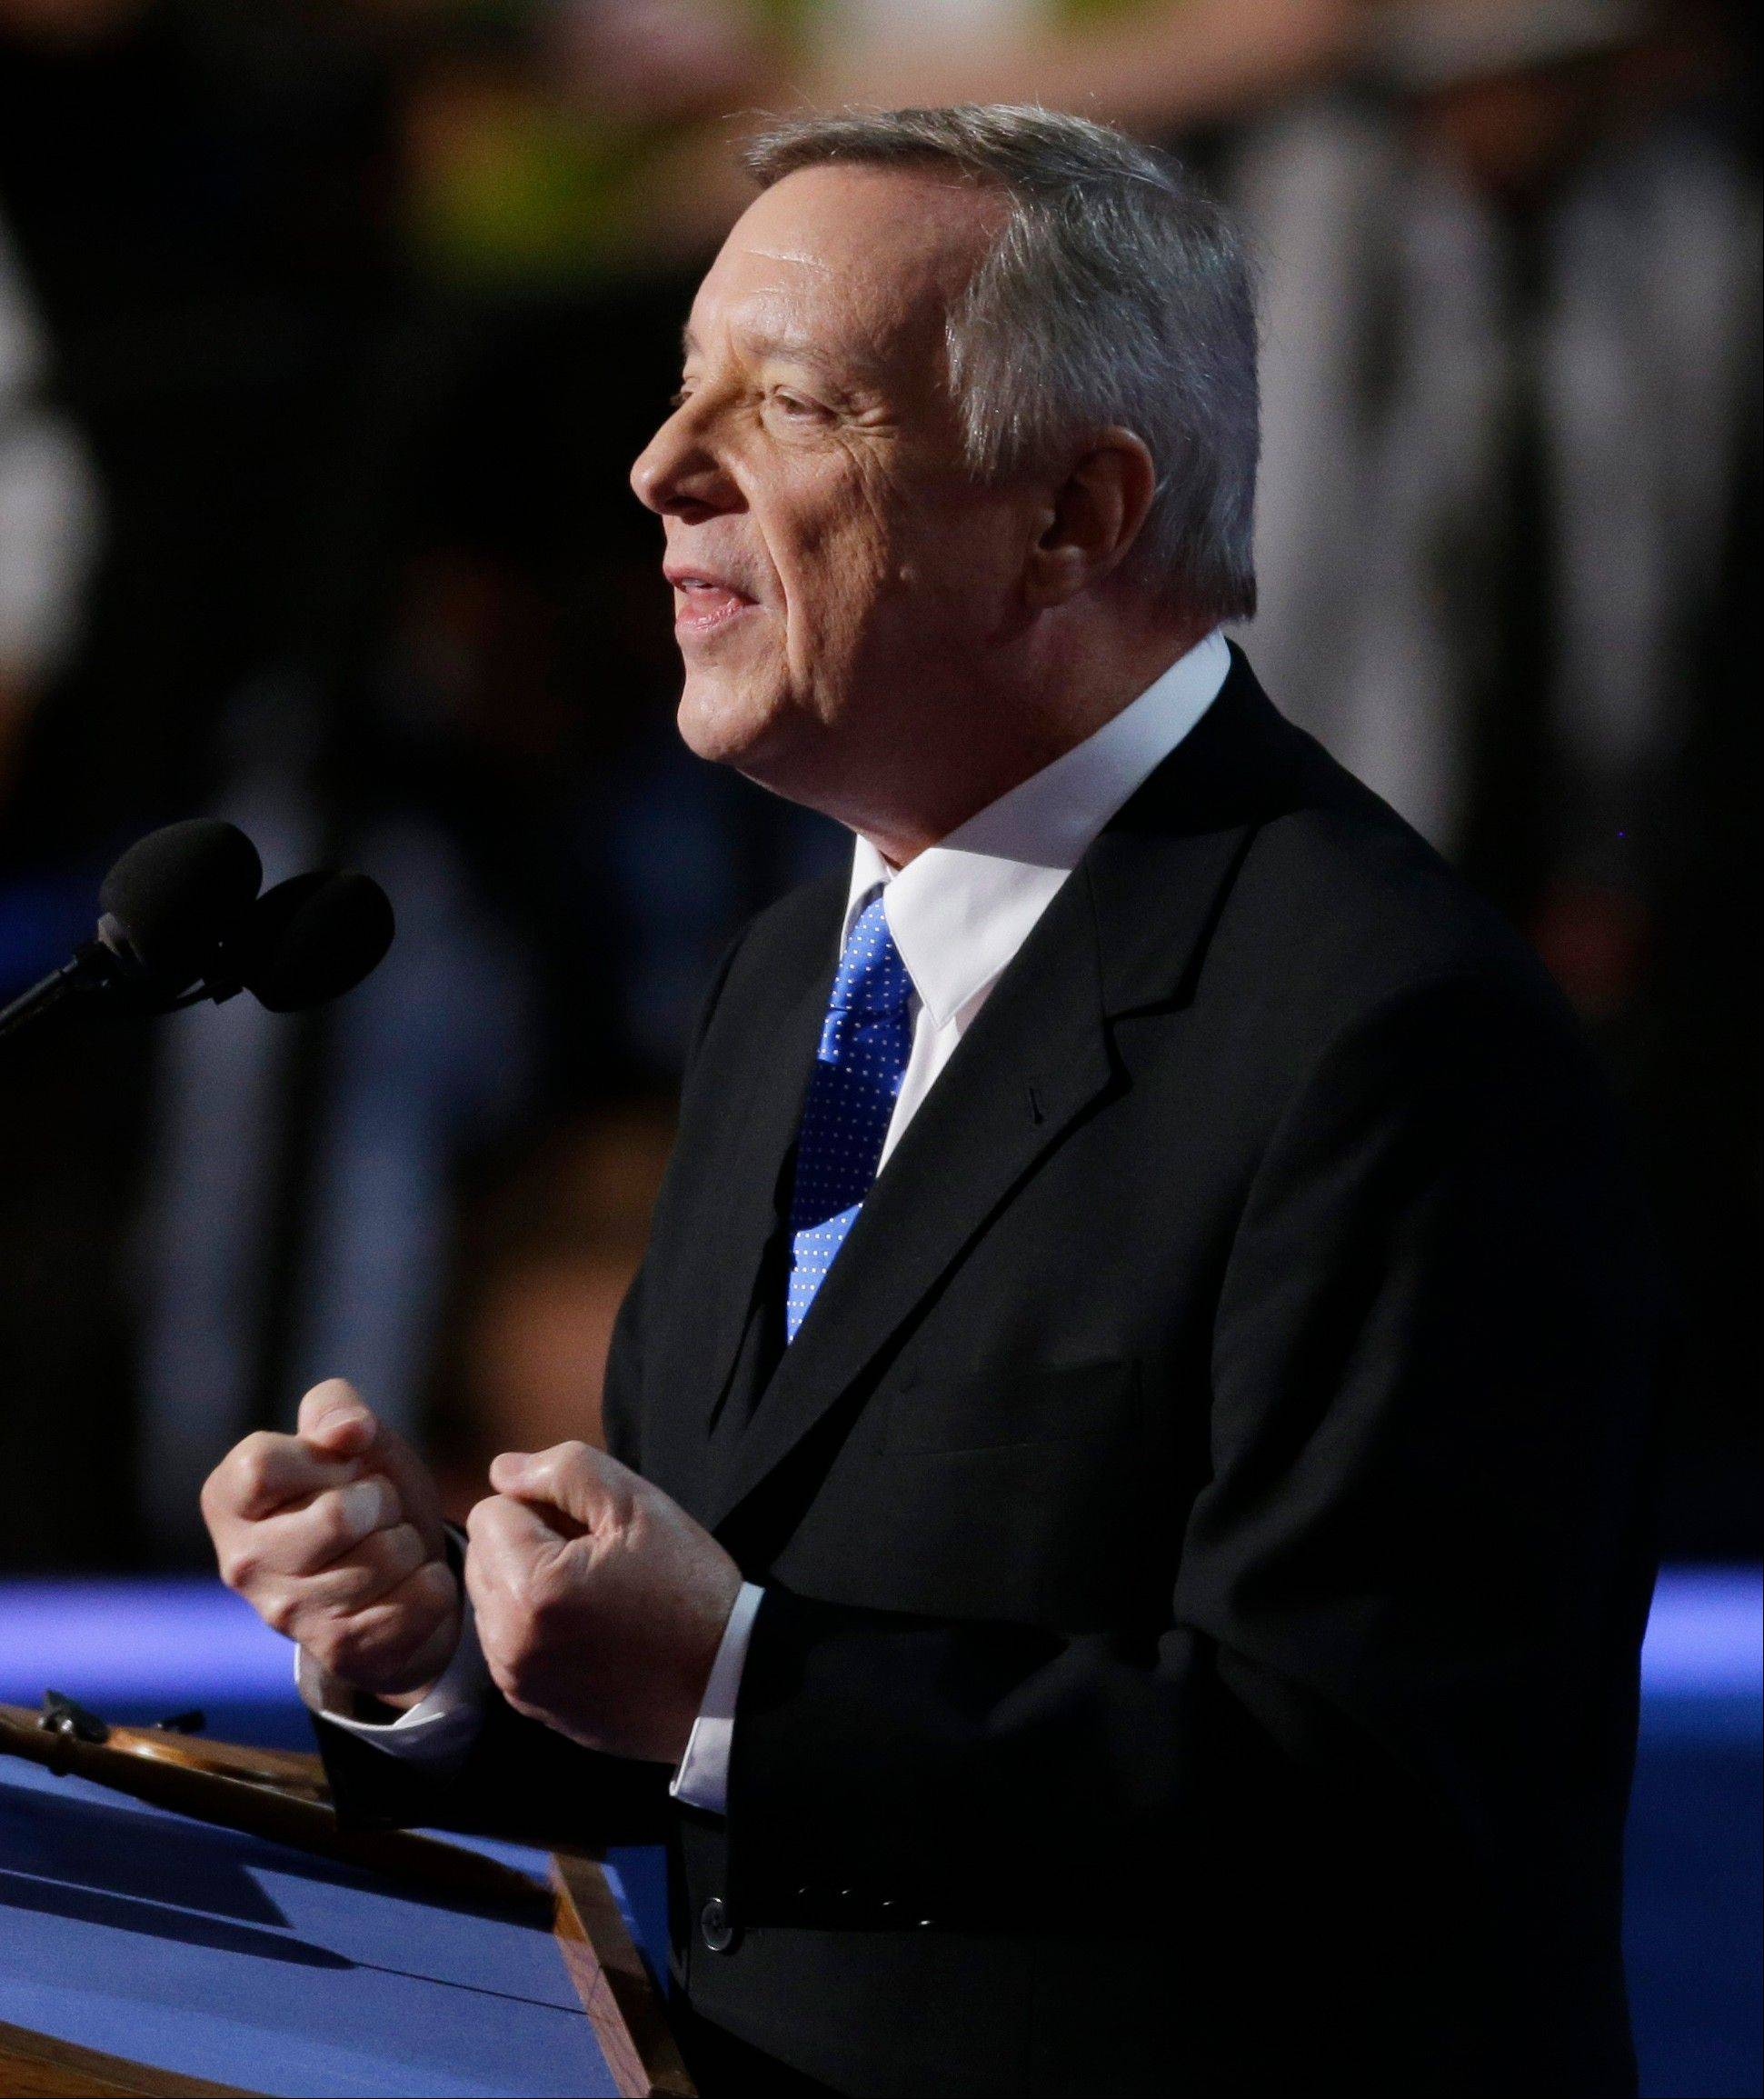 Sen. Dick Durbin of Illinois speaks to delegates at the Democratic National Convention in Charlotte, N.C., last night, preceding Barack Obama for the third DNC in a row.